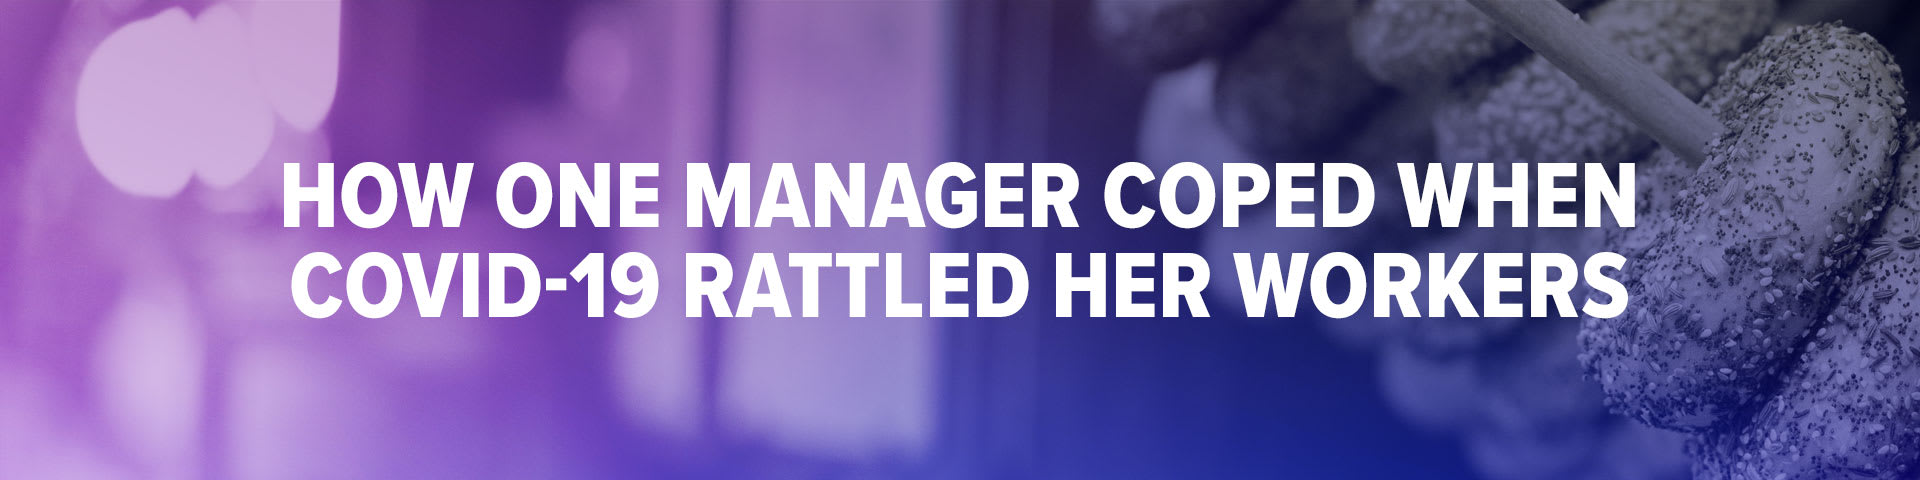 How One Manager Coped when COVID-19 Rattled Her Workers